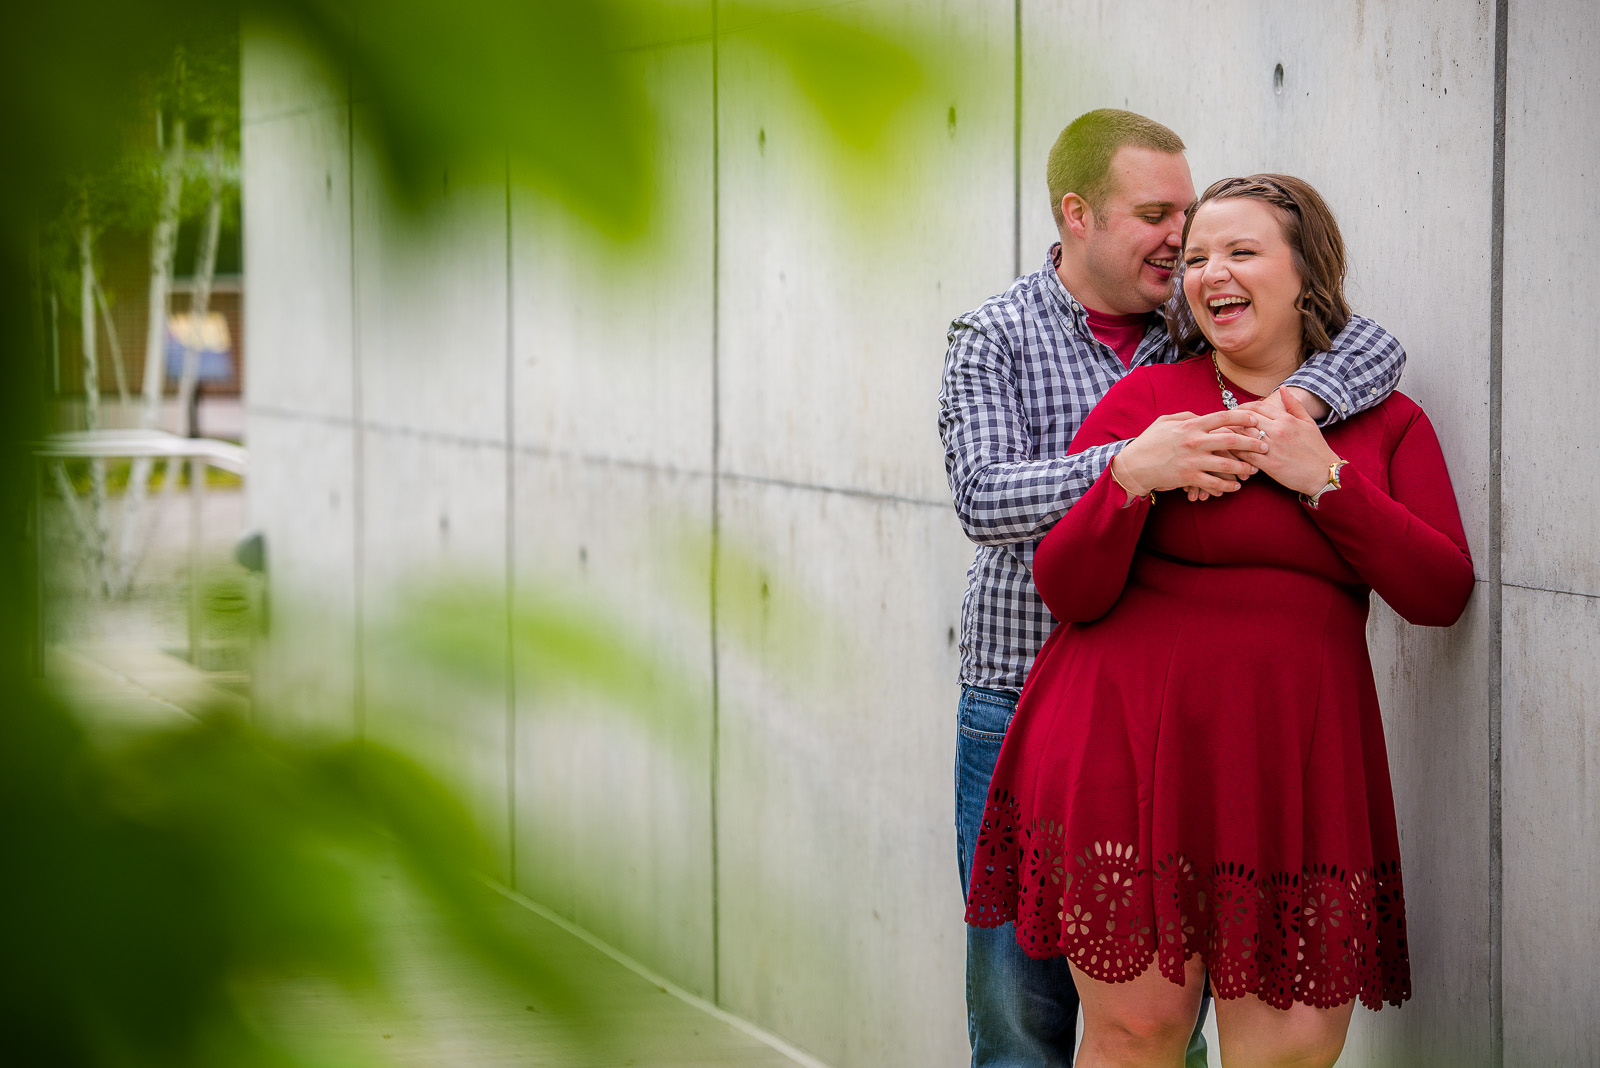 Eric_and_Christy_Photography_Blog_Stacey_Geoff_Engagement-4